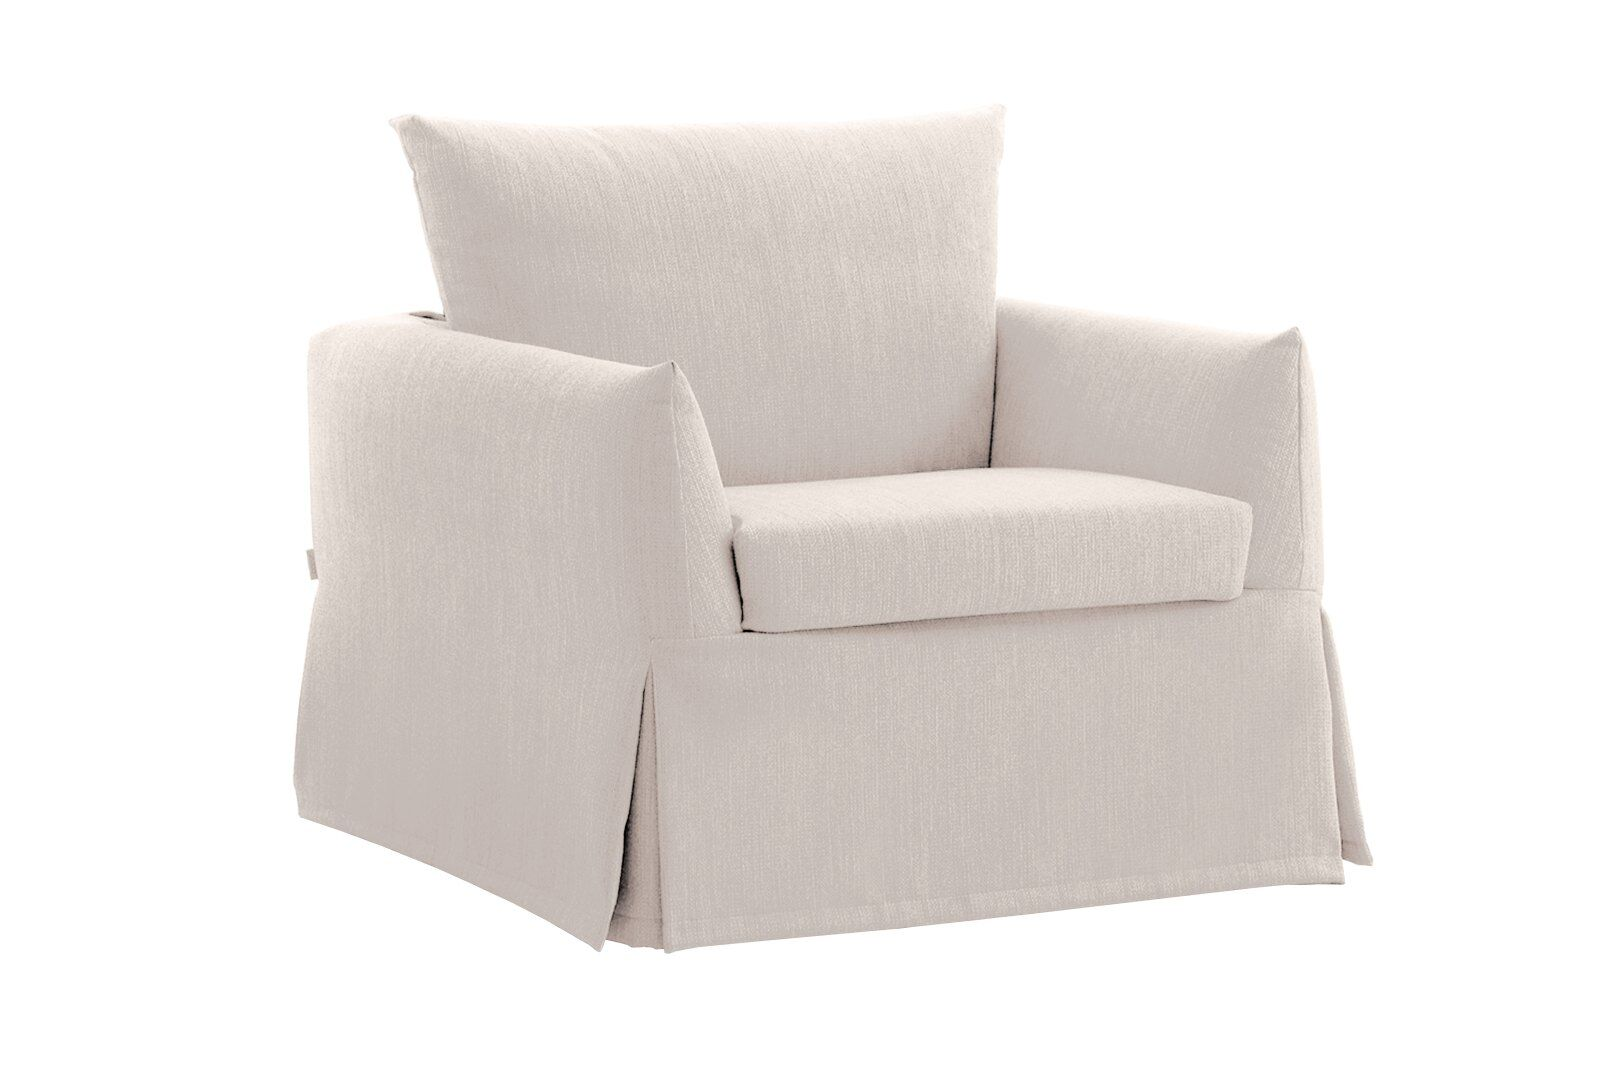 Harlow Single Bed Armchair Sofabed / 1